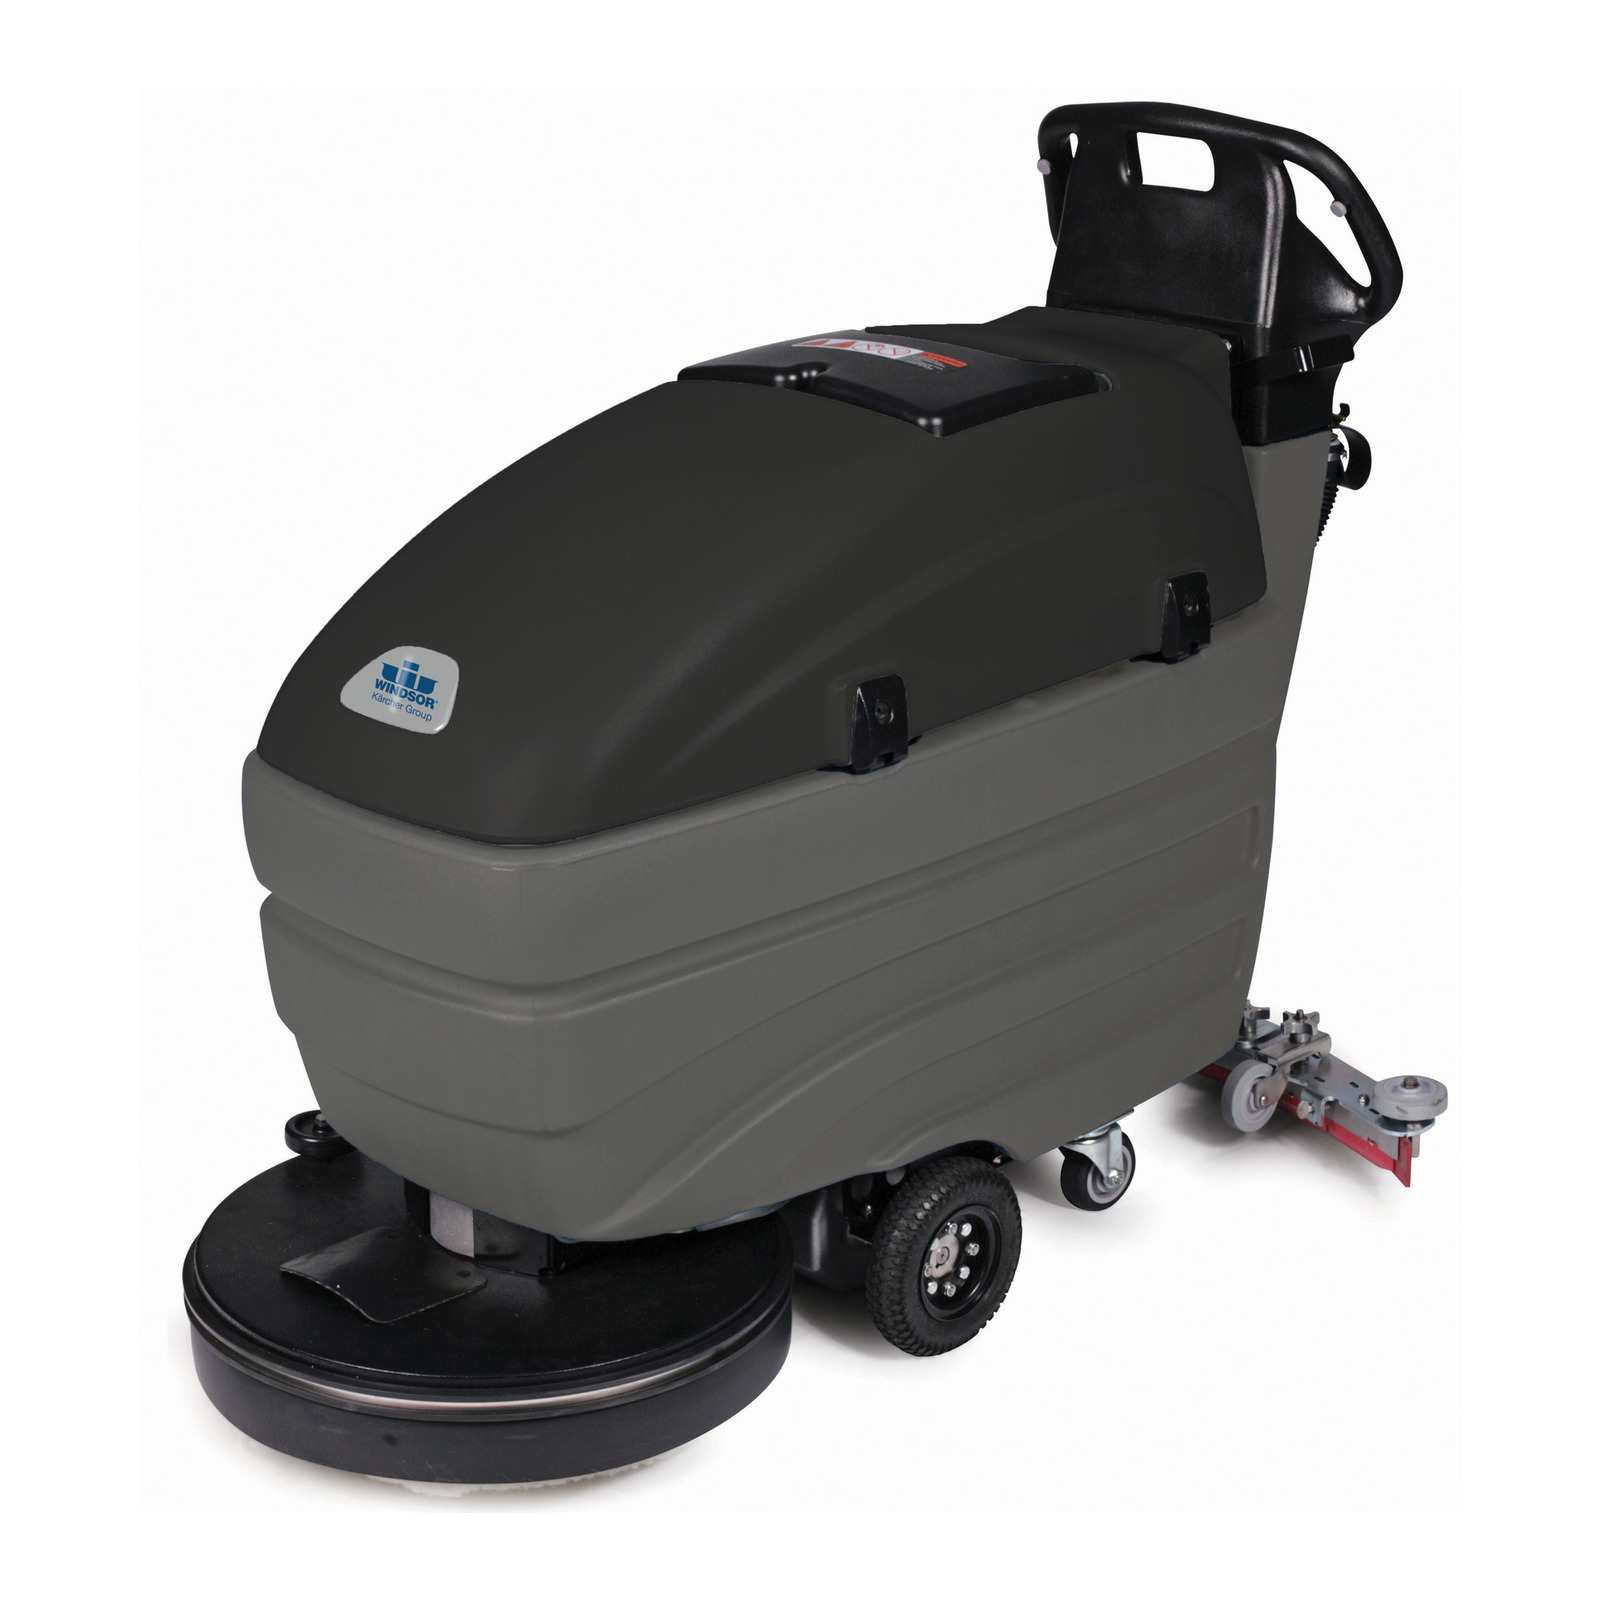 Saber Compact Commercial Automatic Floor Scrubber Windsor - How to use a floor scrubber machine